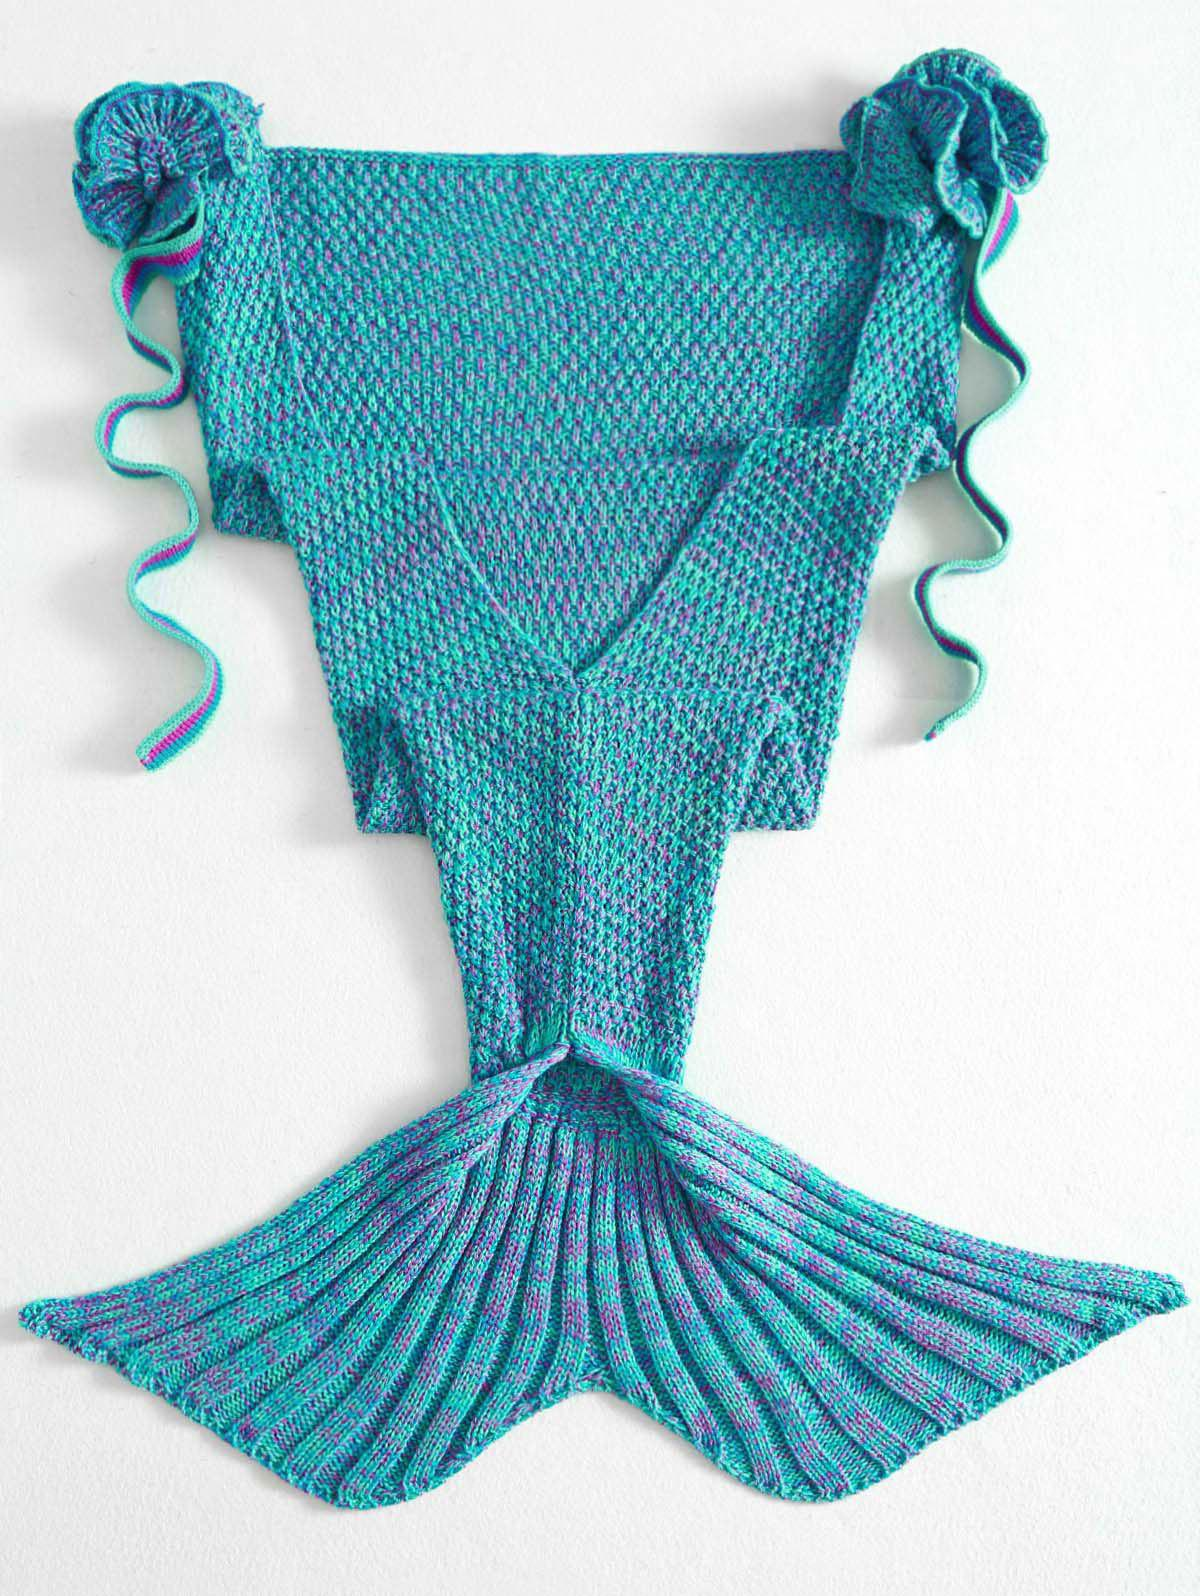 Stylish Knitted Flowers Embellished Mermaid Tail Shape Blanket For KidsHOME<br><br>Color: GREEN; Type: Knitted; Material: Acrylic; Pattern Type: Solid; Size(L*W)(CM): 95*68CM; Weight: 0.450kg; Package Contents: 1 x Blanket;